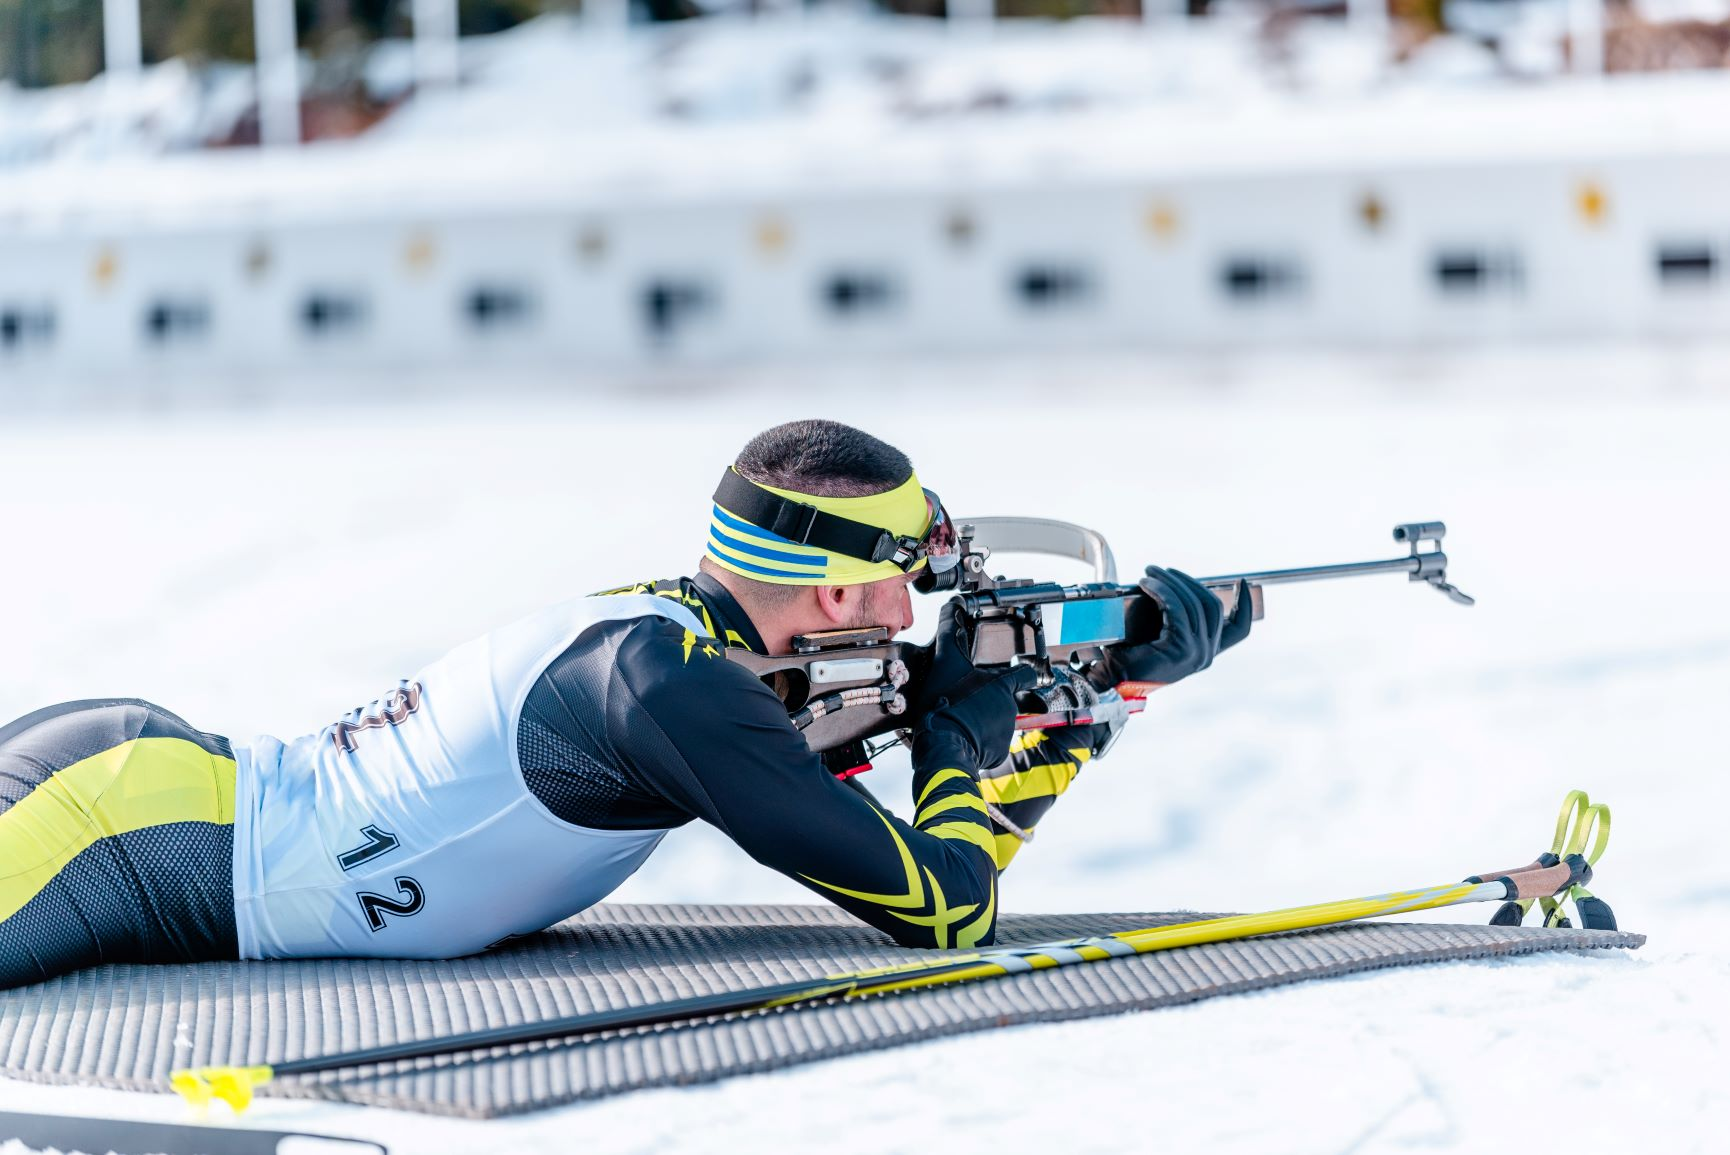 Biathlete rifle shooting lying position. Shooting range in the background. Race concept